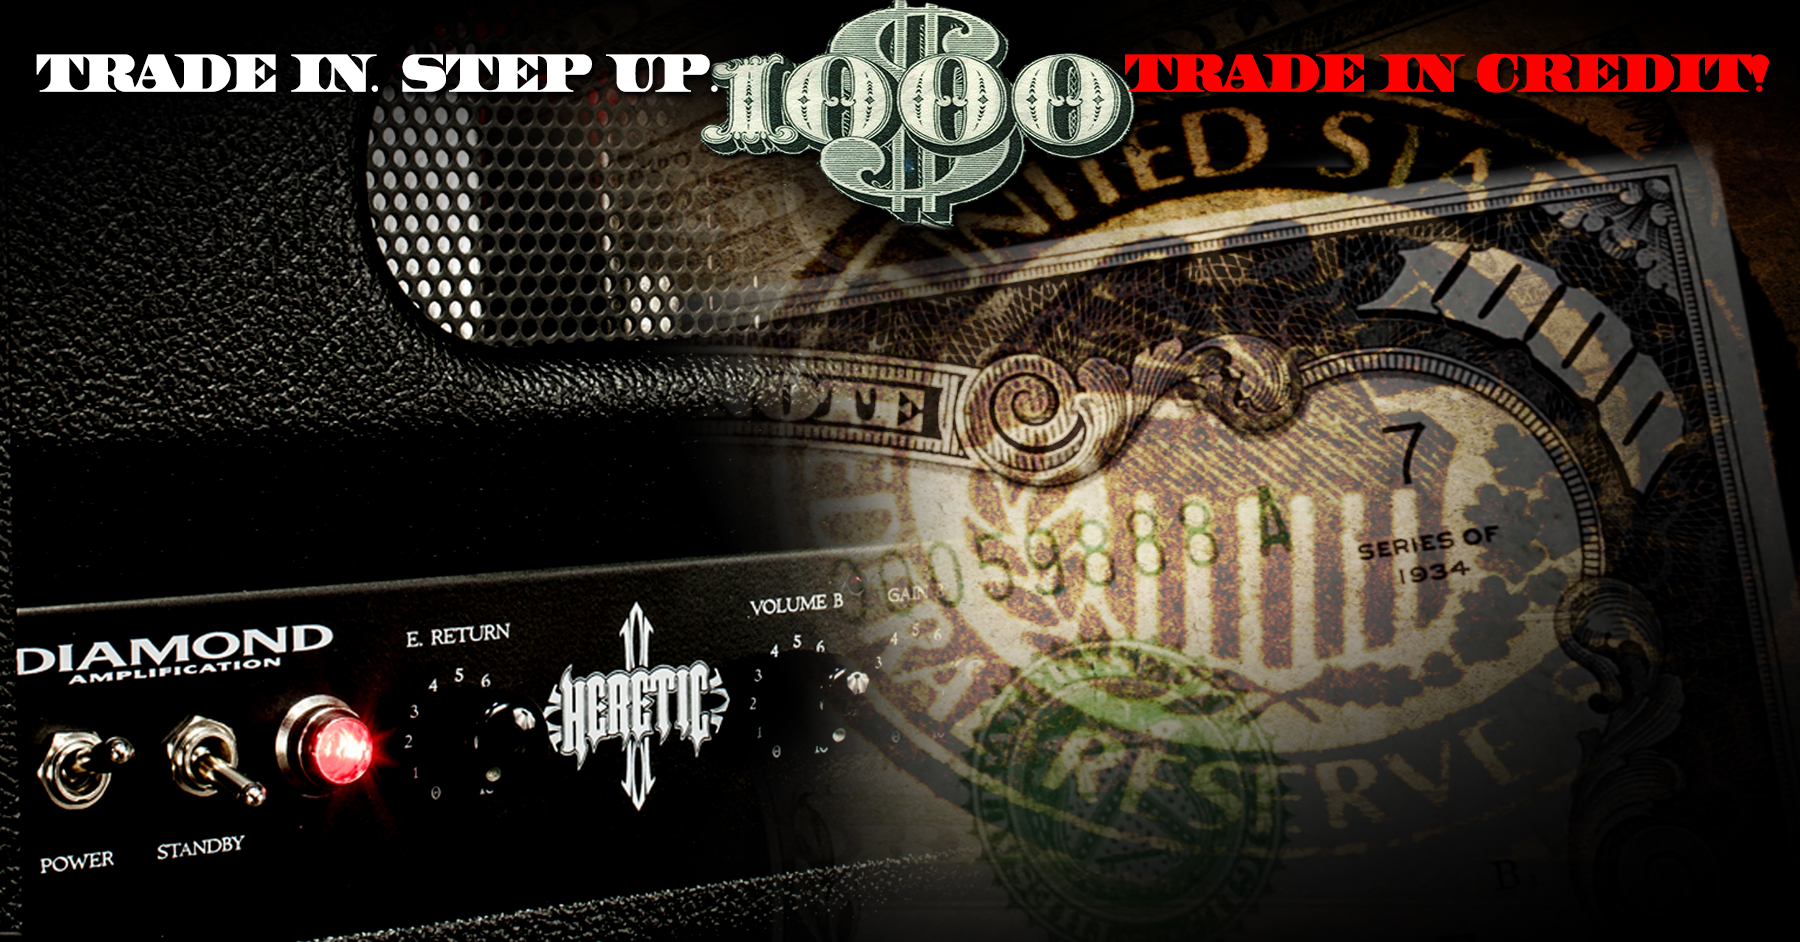 $1000* credit on a new USA Custom Diamond Amp for qualifying amps!